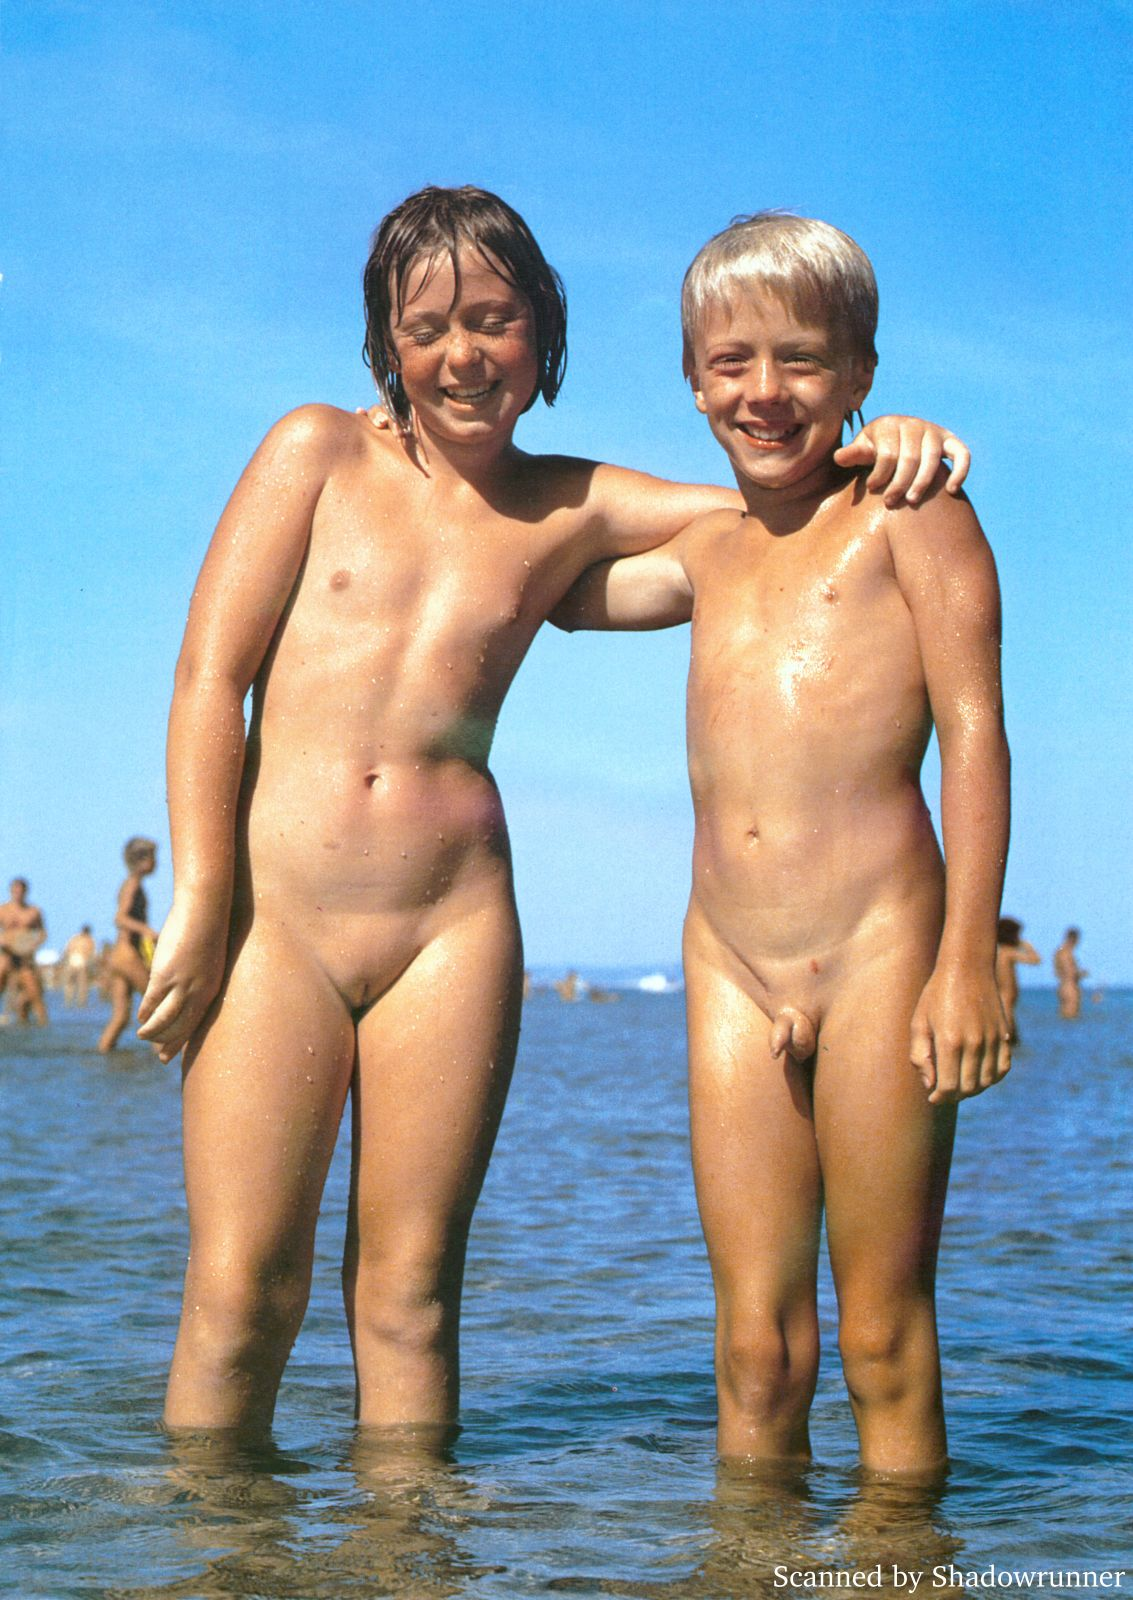 Talk. torrent young nudist agree, this